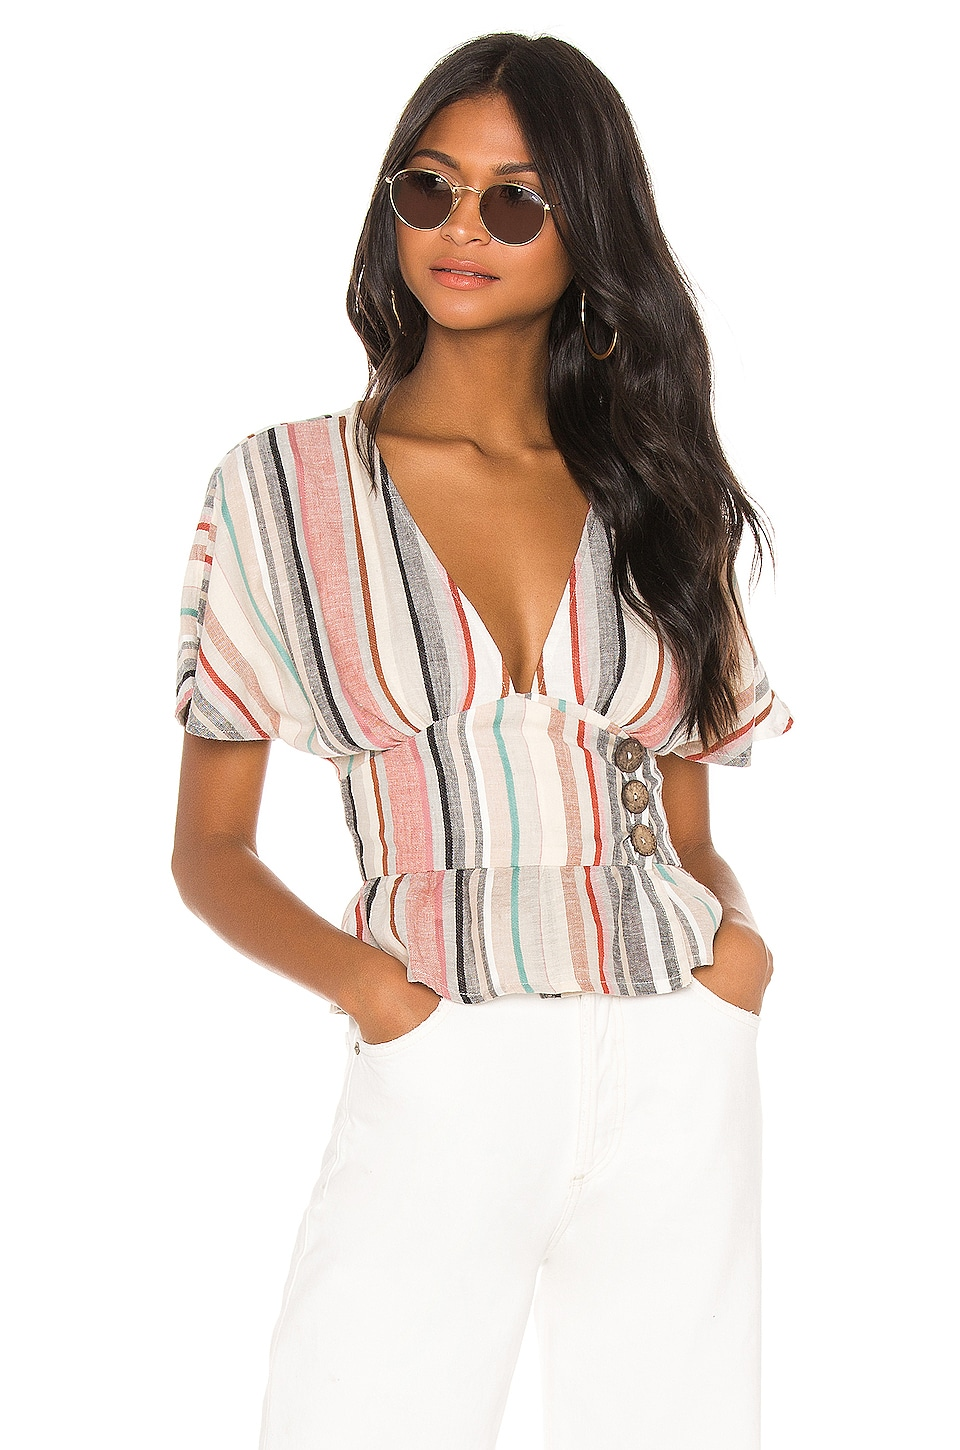 House of Harlow 1960 x REVOLVE Salma Top in Red Multi